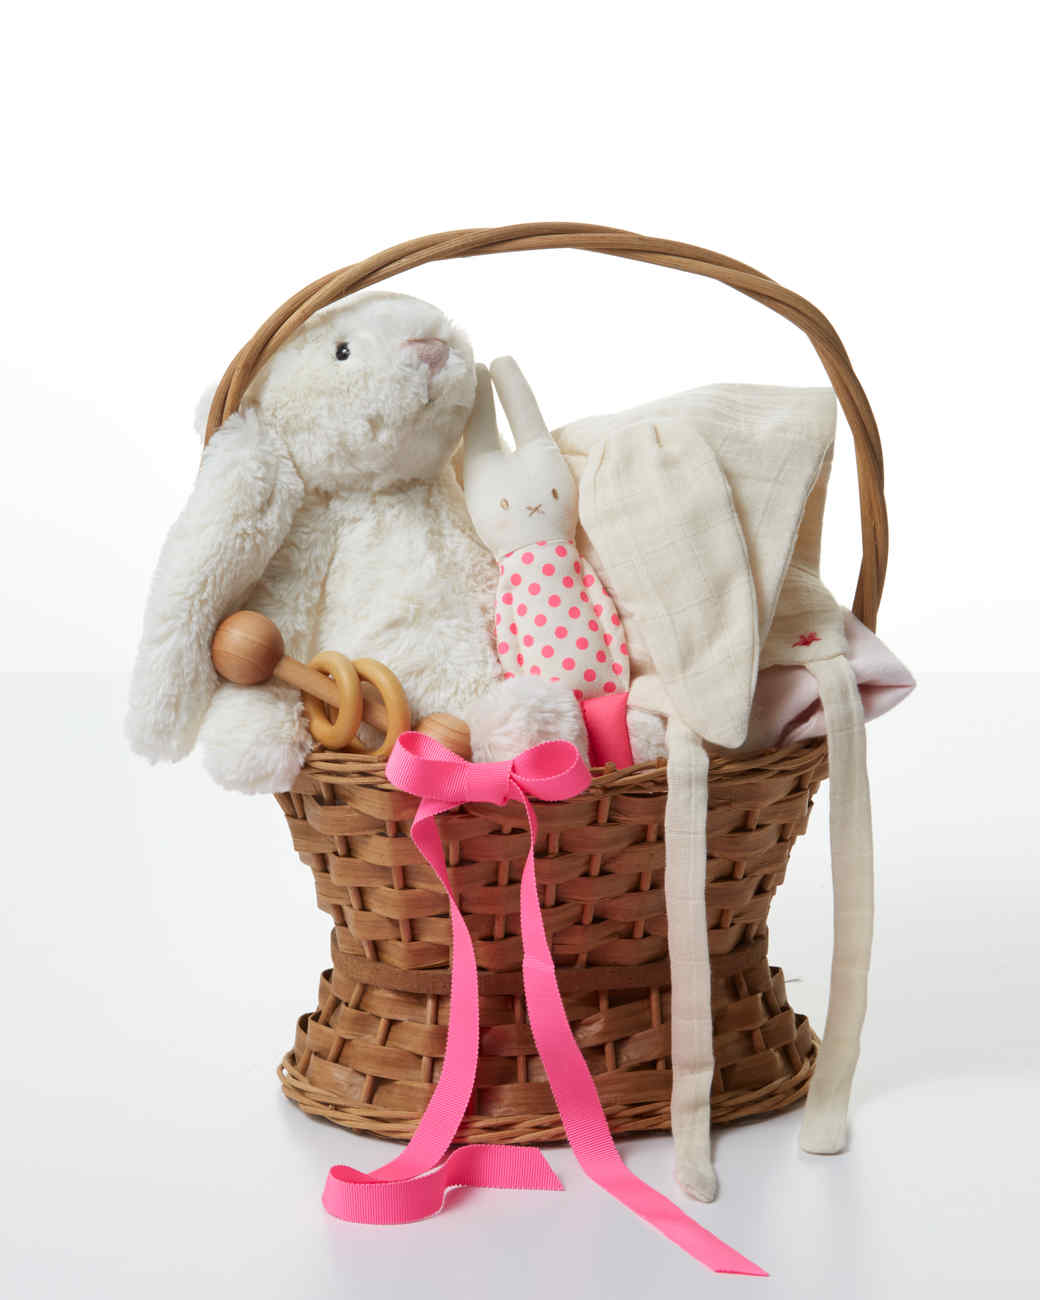 7 aww inspiring easter basket ideas for babies martha stewart negle